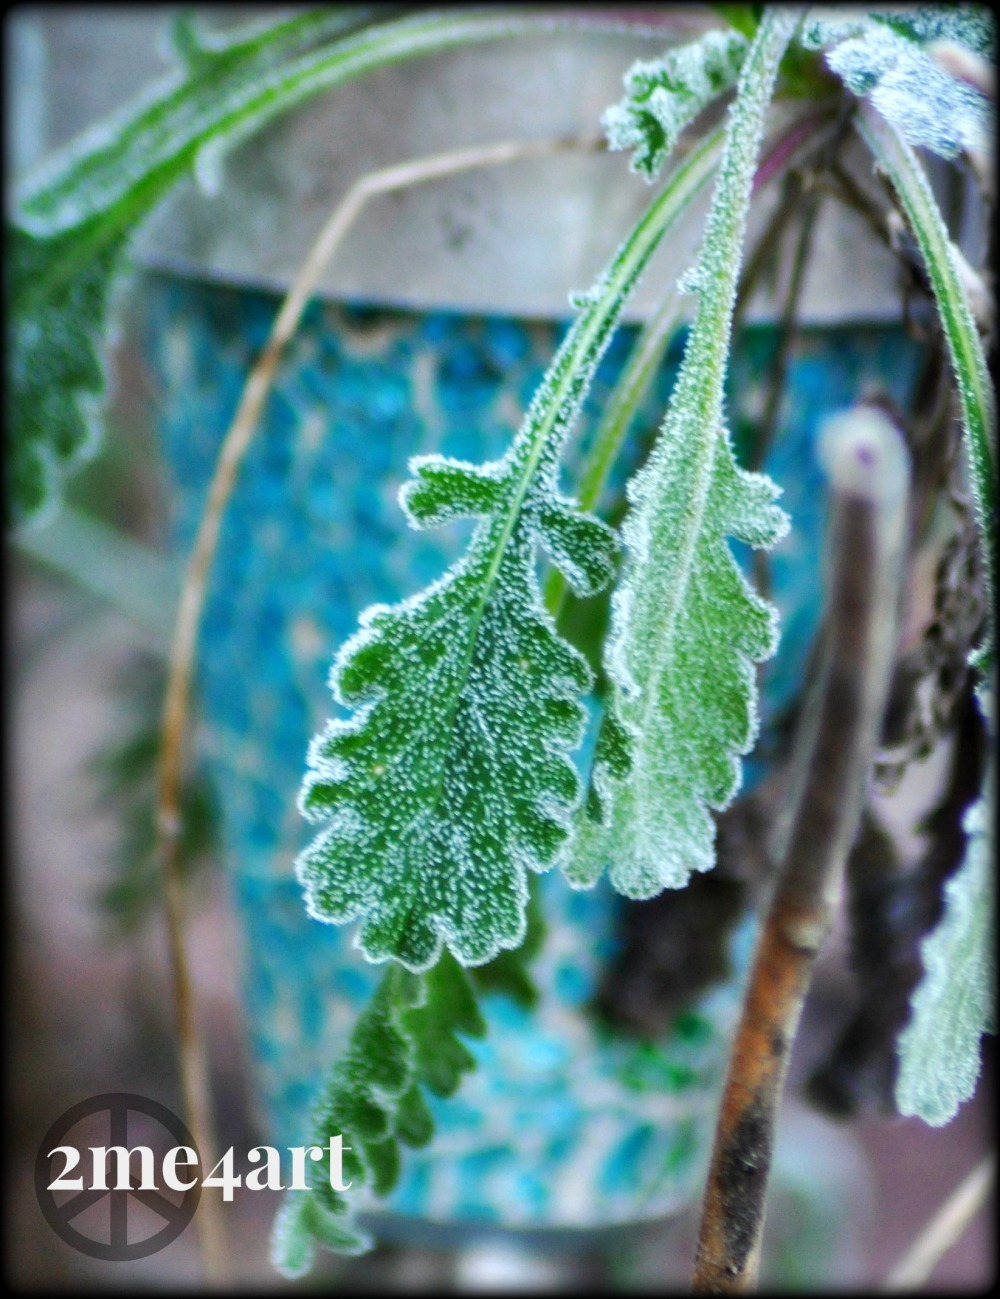 frost against blue